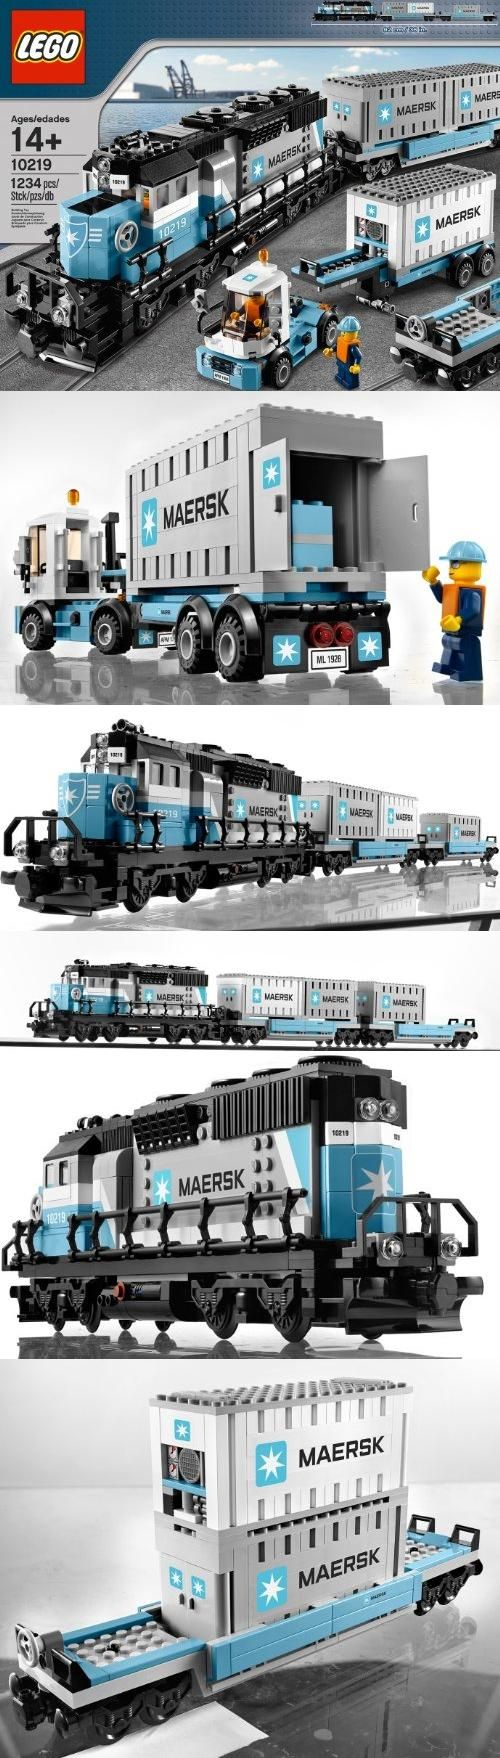 LEGO Creator Maersk Train 10219, , #Toys, #Building Sets